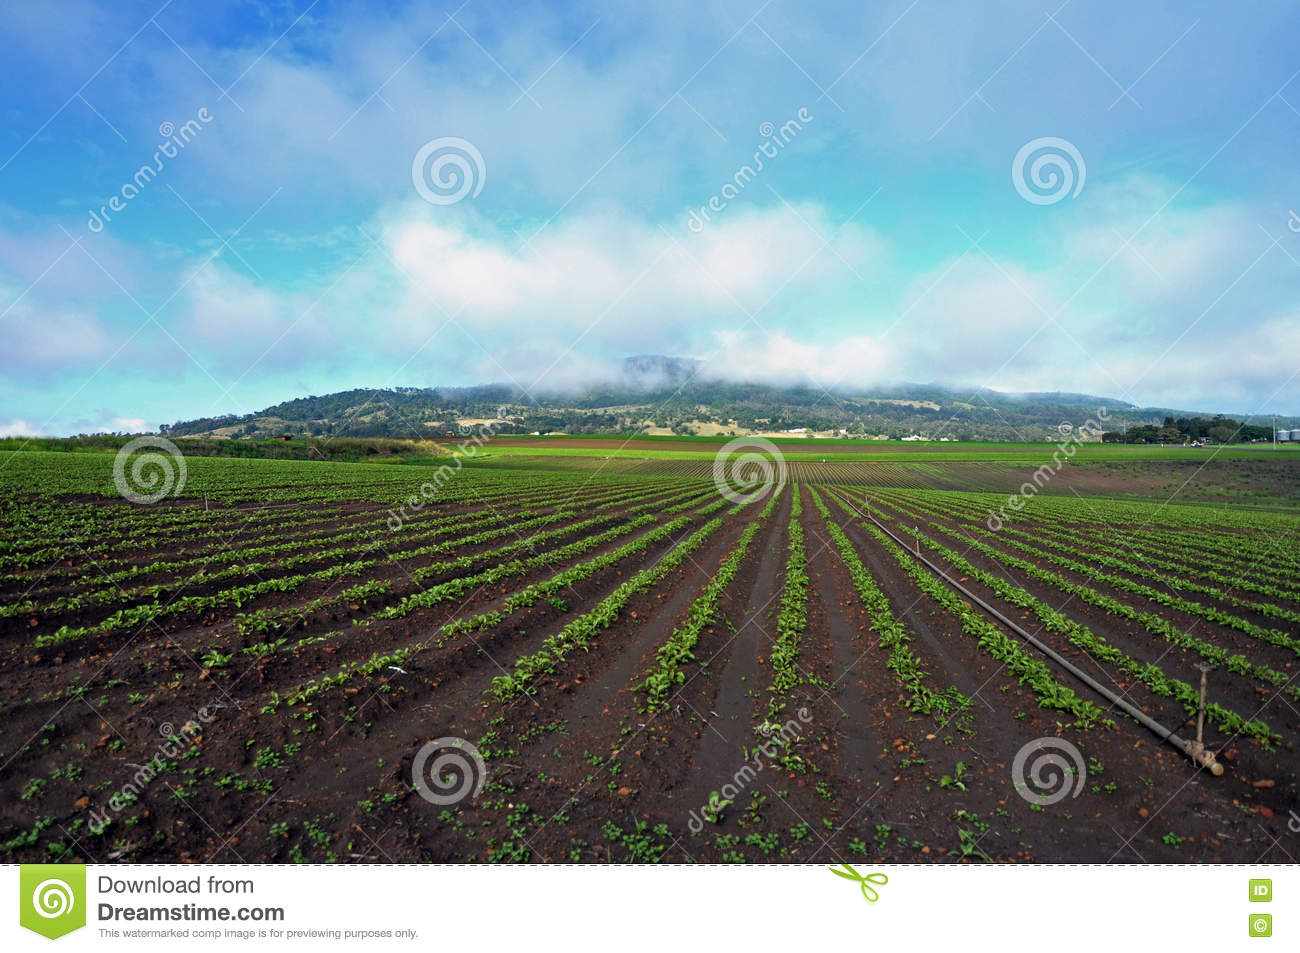 Acres of farming new vegetable crop planting agriculture Australia